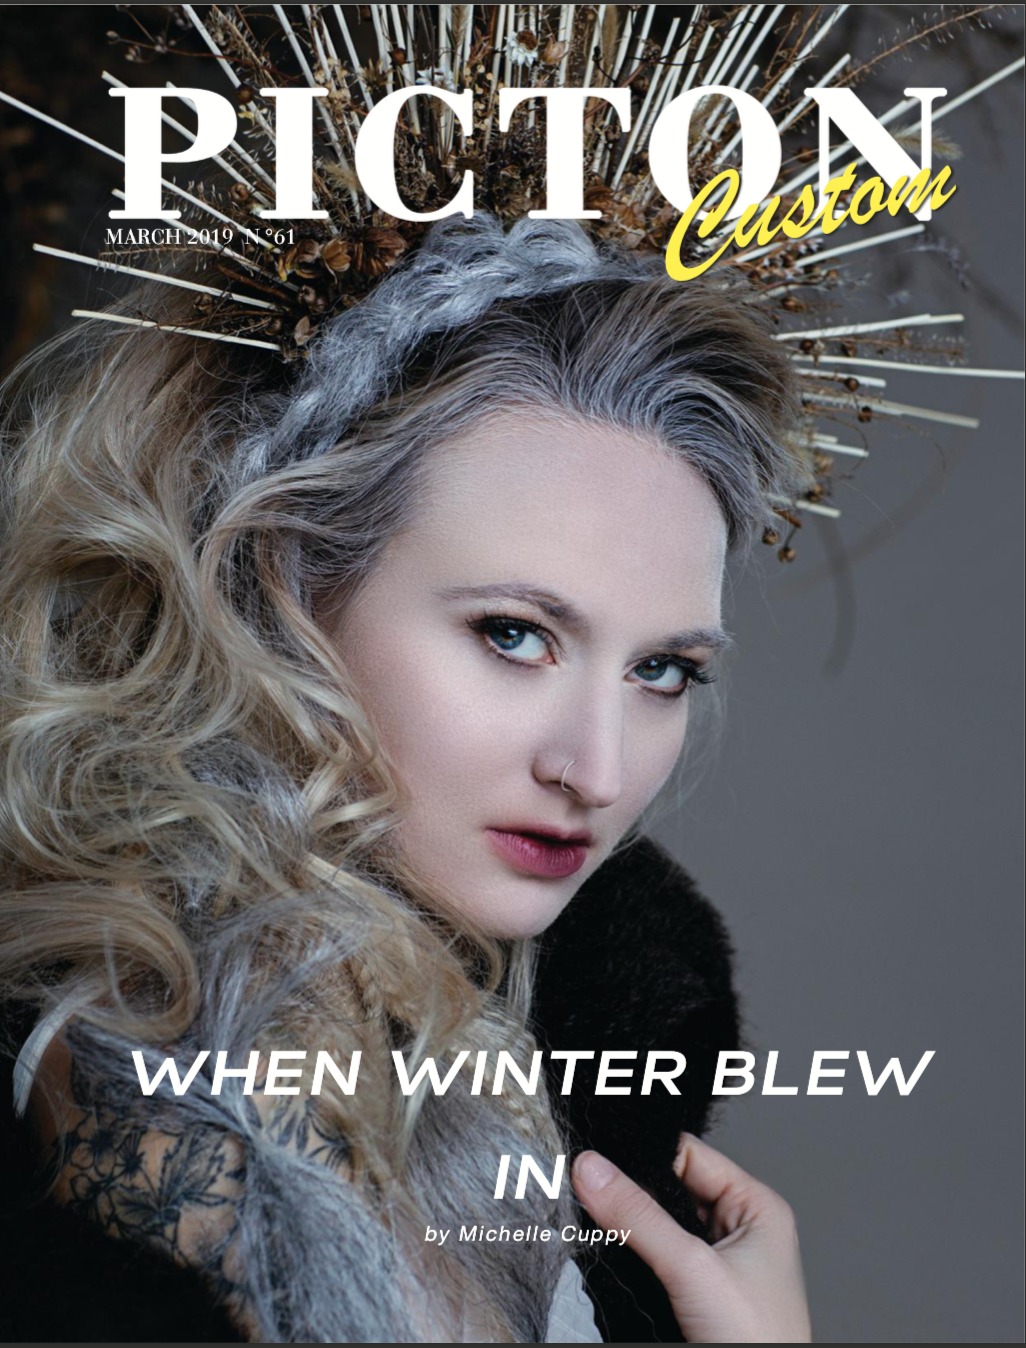 Picton Mag - when winter blew in